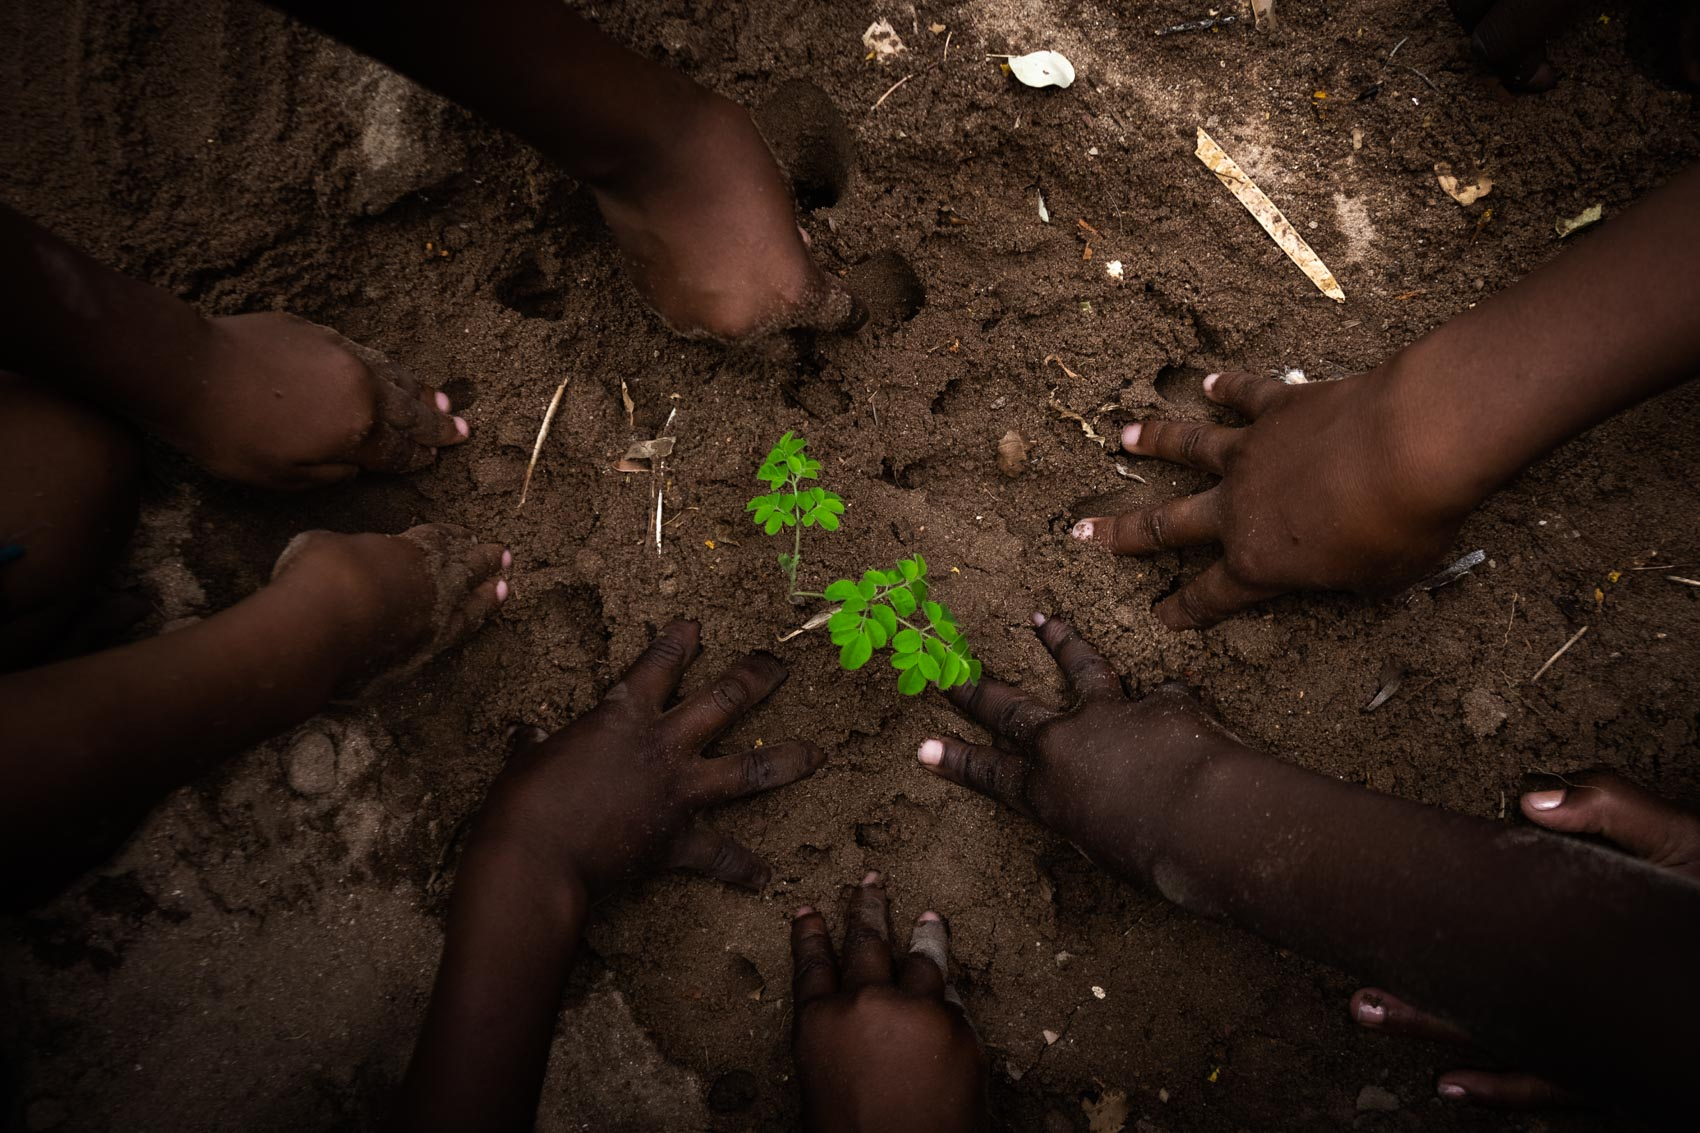 Children hands padding the dirt while planting © David Coulson conservation photographer